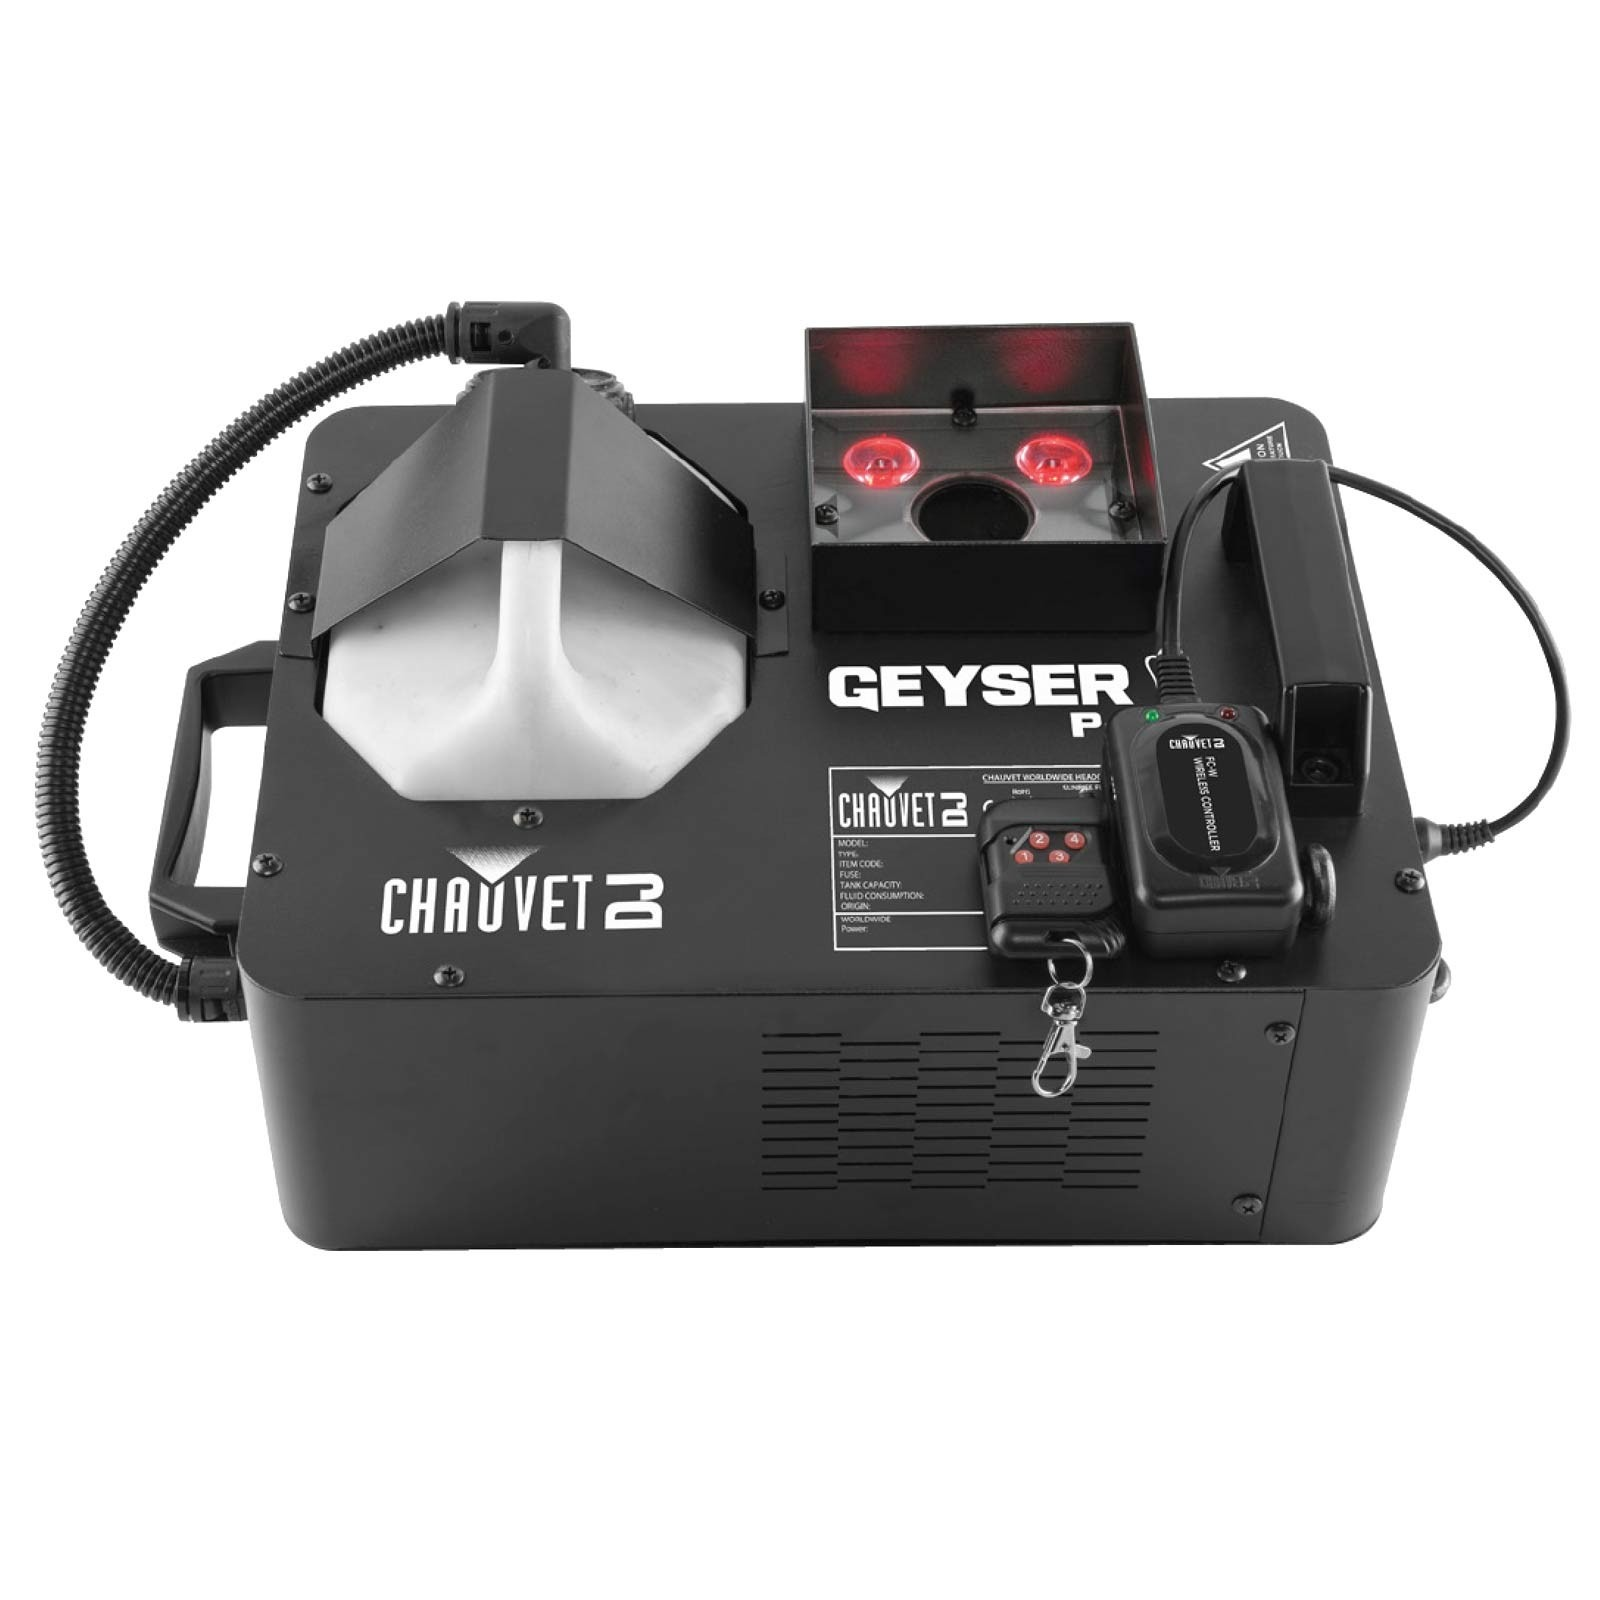 Chauvet DJ Geyser P4 2-in-1 Small Form Factor Pyrotechnic-Like ...